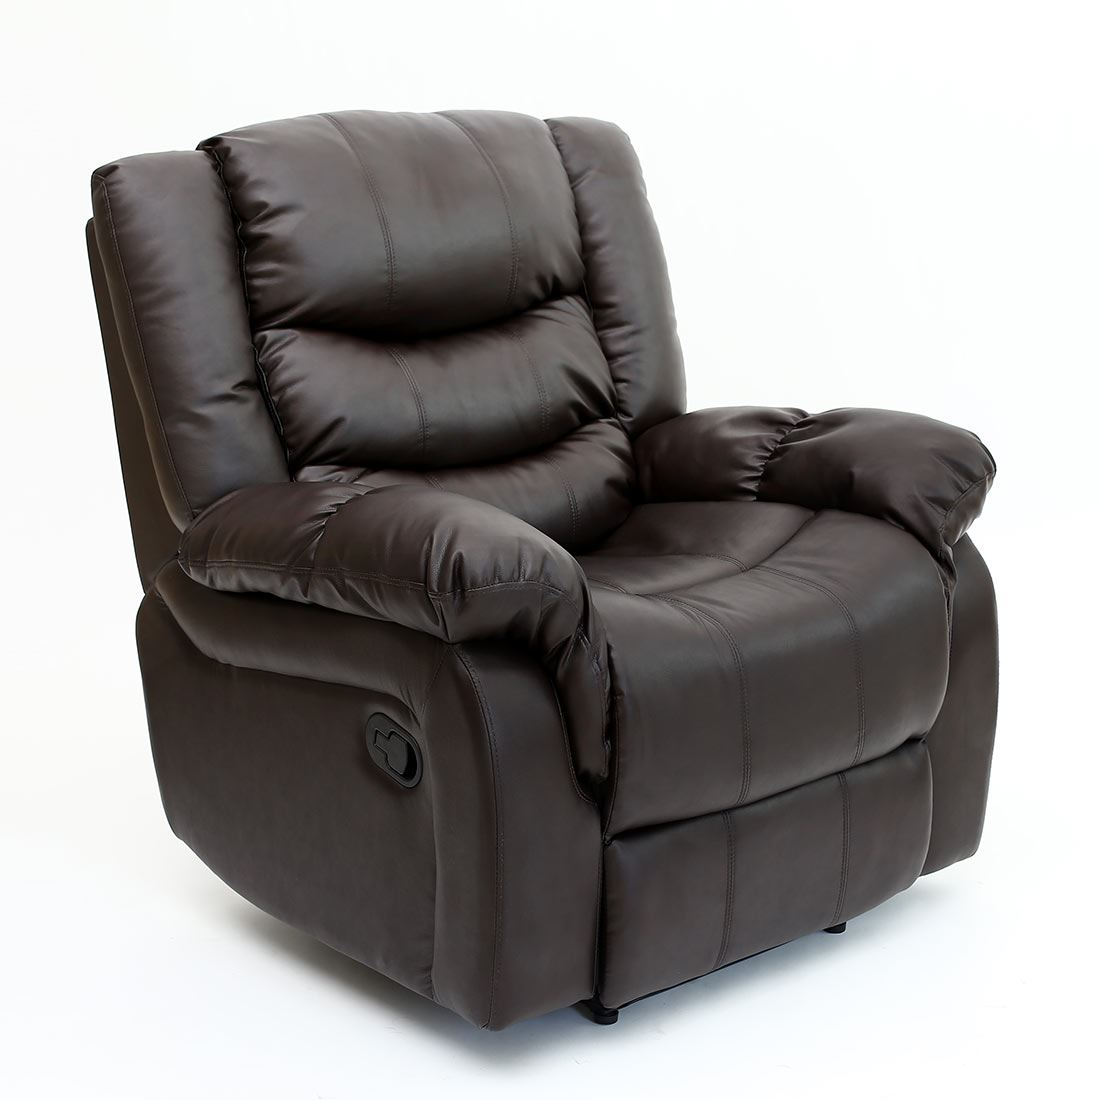 seattle leather recliner armchair sofa home lounge chair reclining